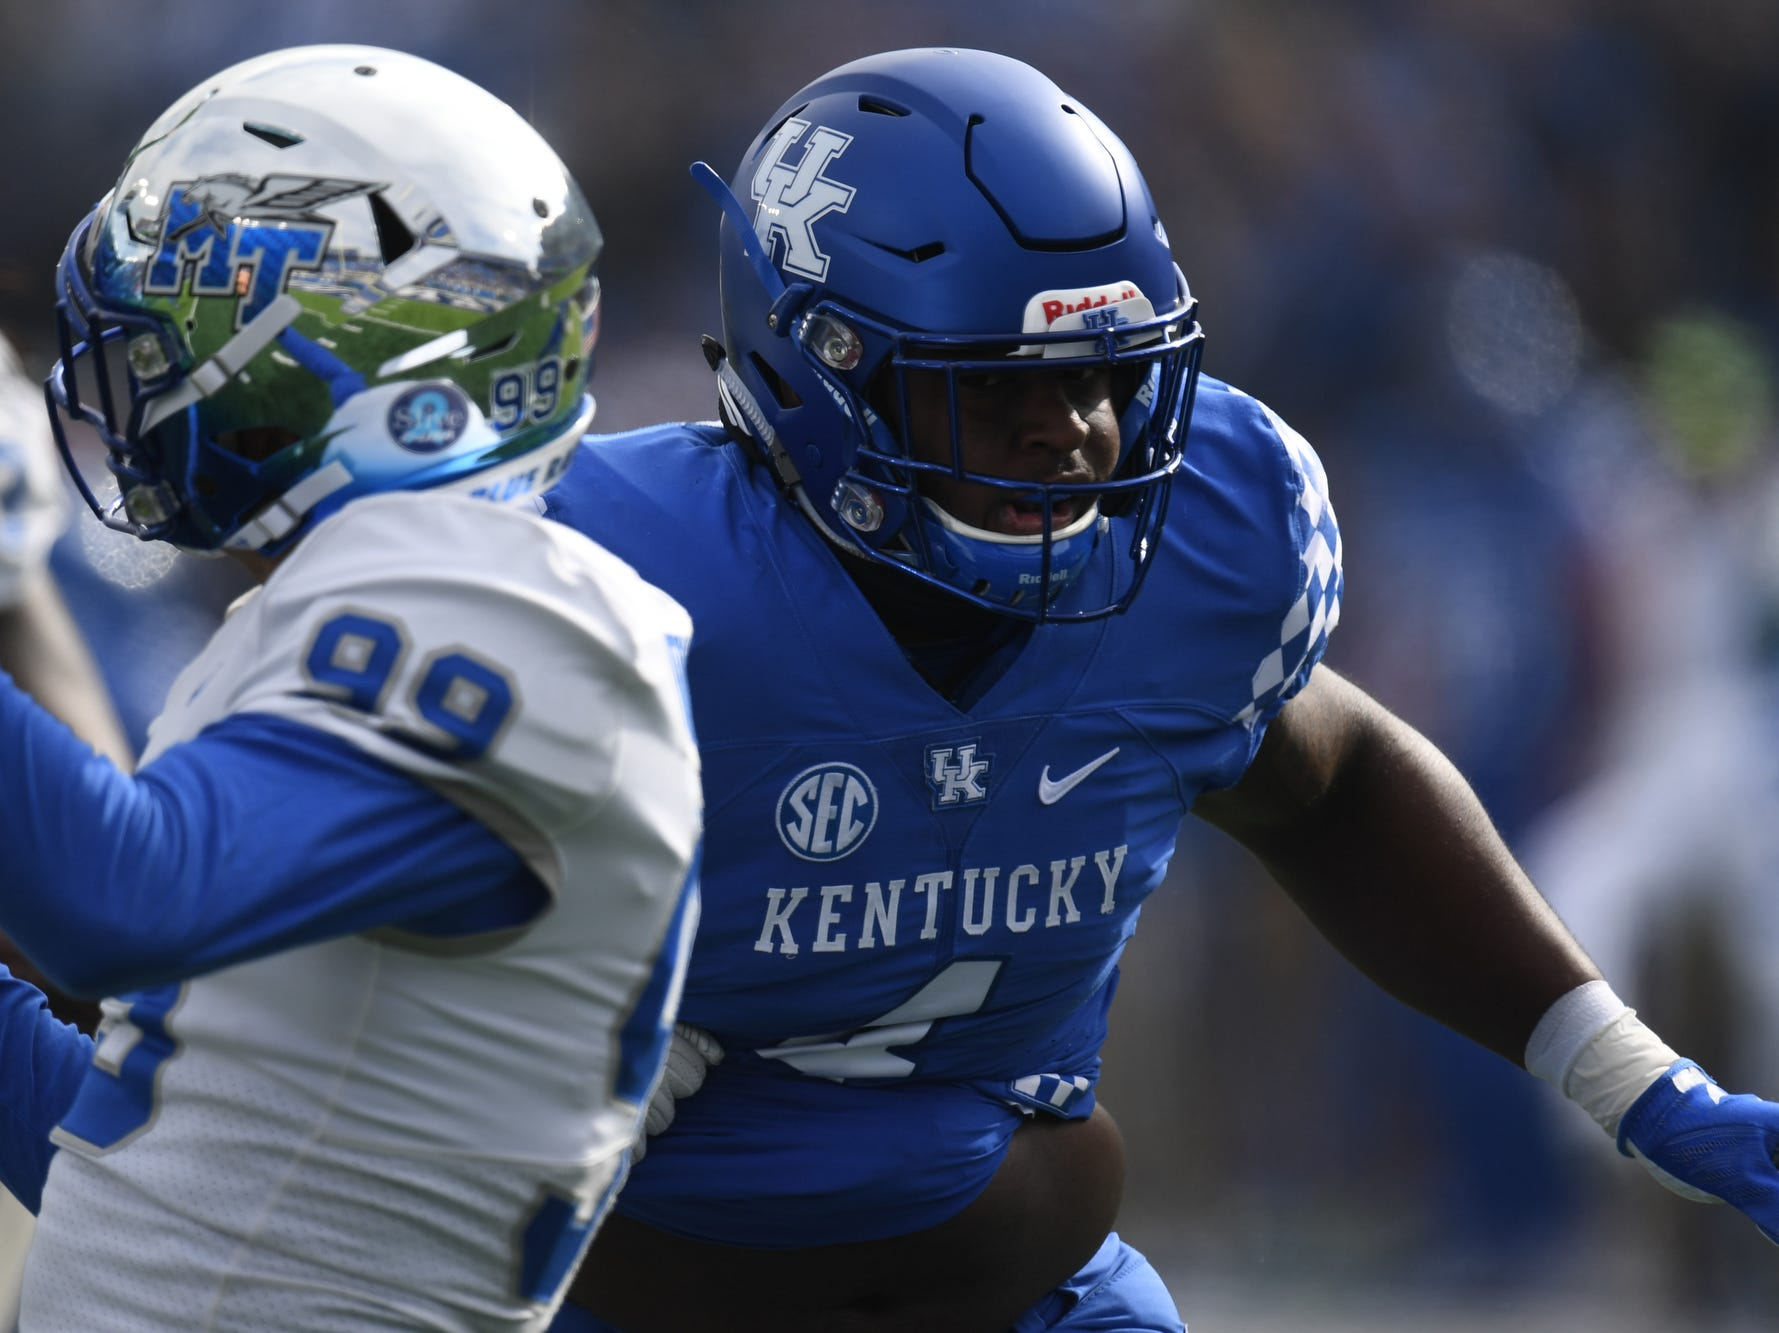 UK DL Joshua Paschal during the University of Kentucky football game against Middle Tennessee at Kroger Field in Lexington, Kentucky on Saturday, November 17, 2018.